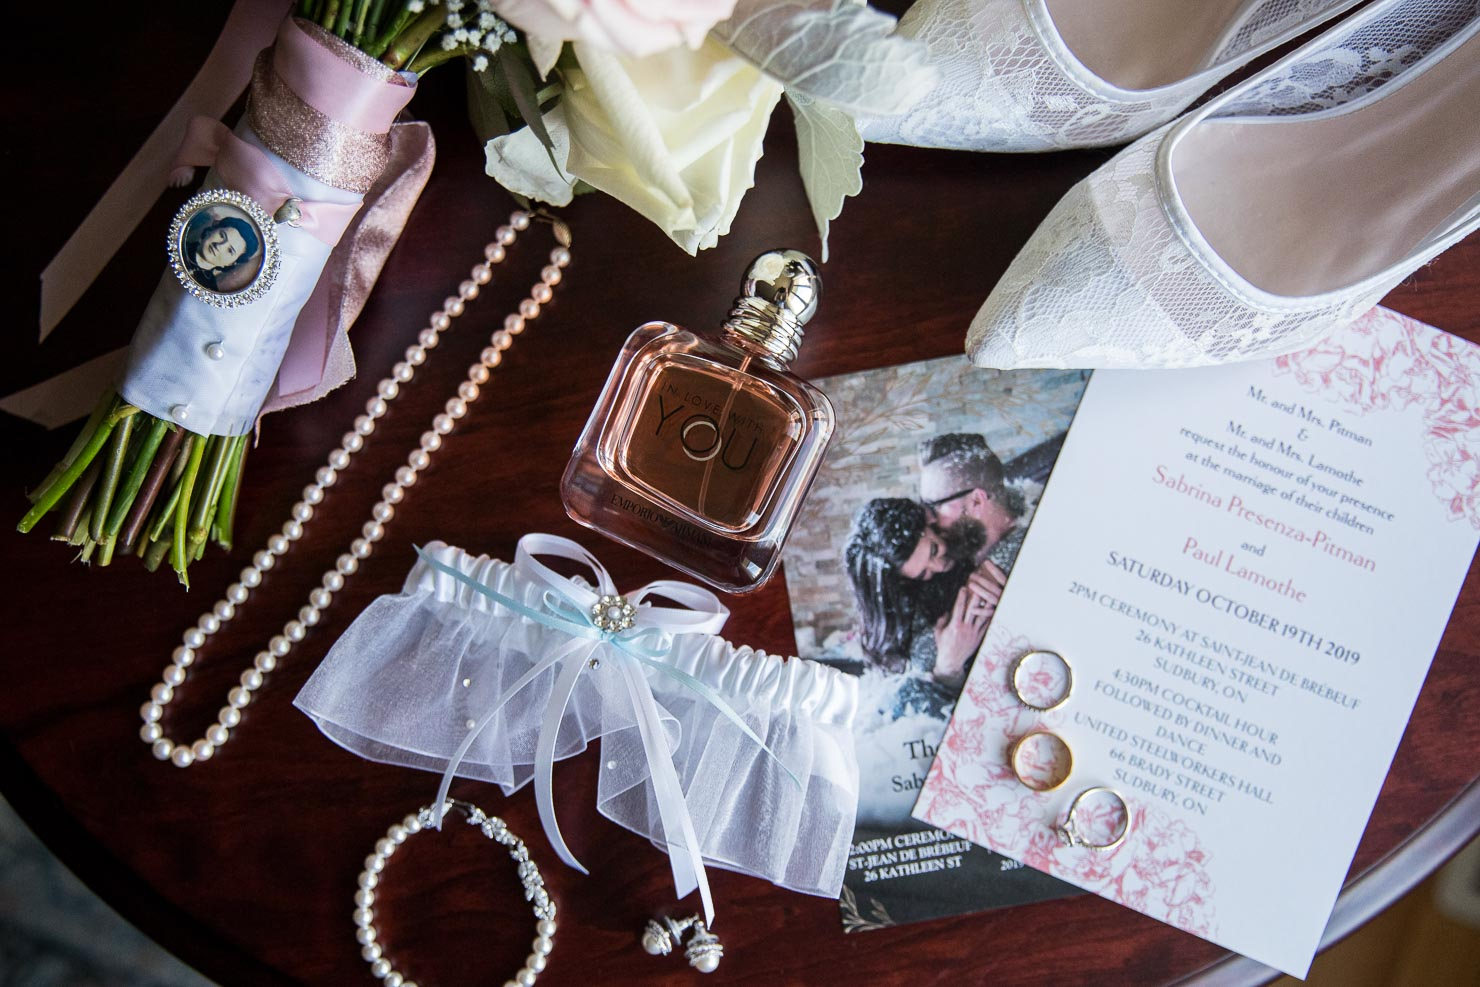 Wedding details, sudbury wedding, akaiserphoto, wedding photographer